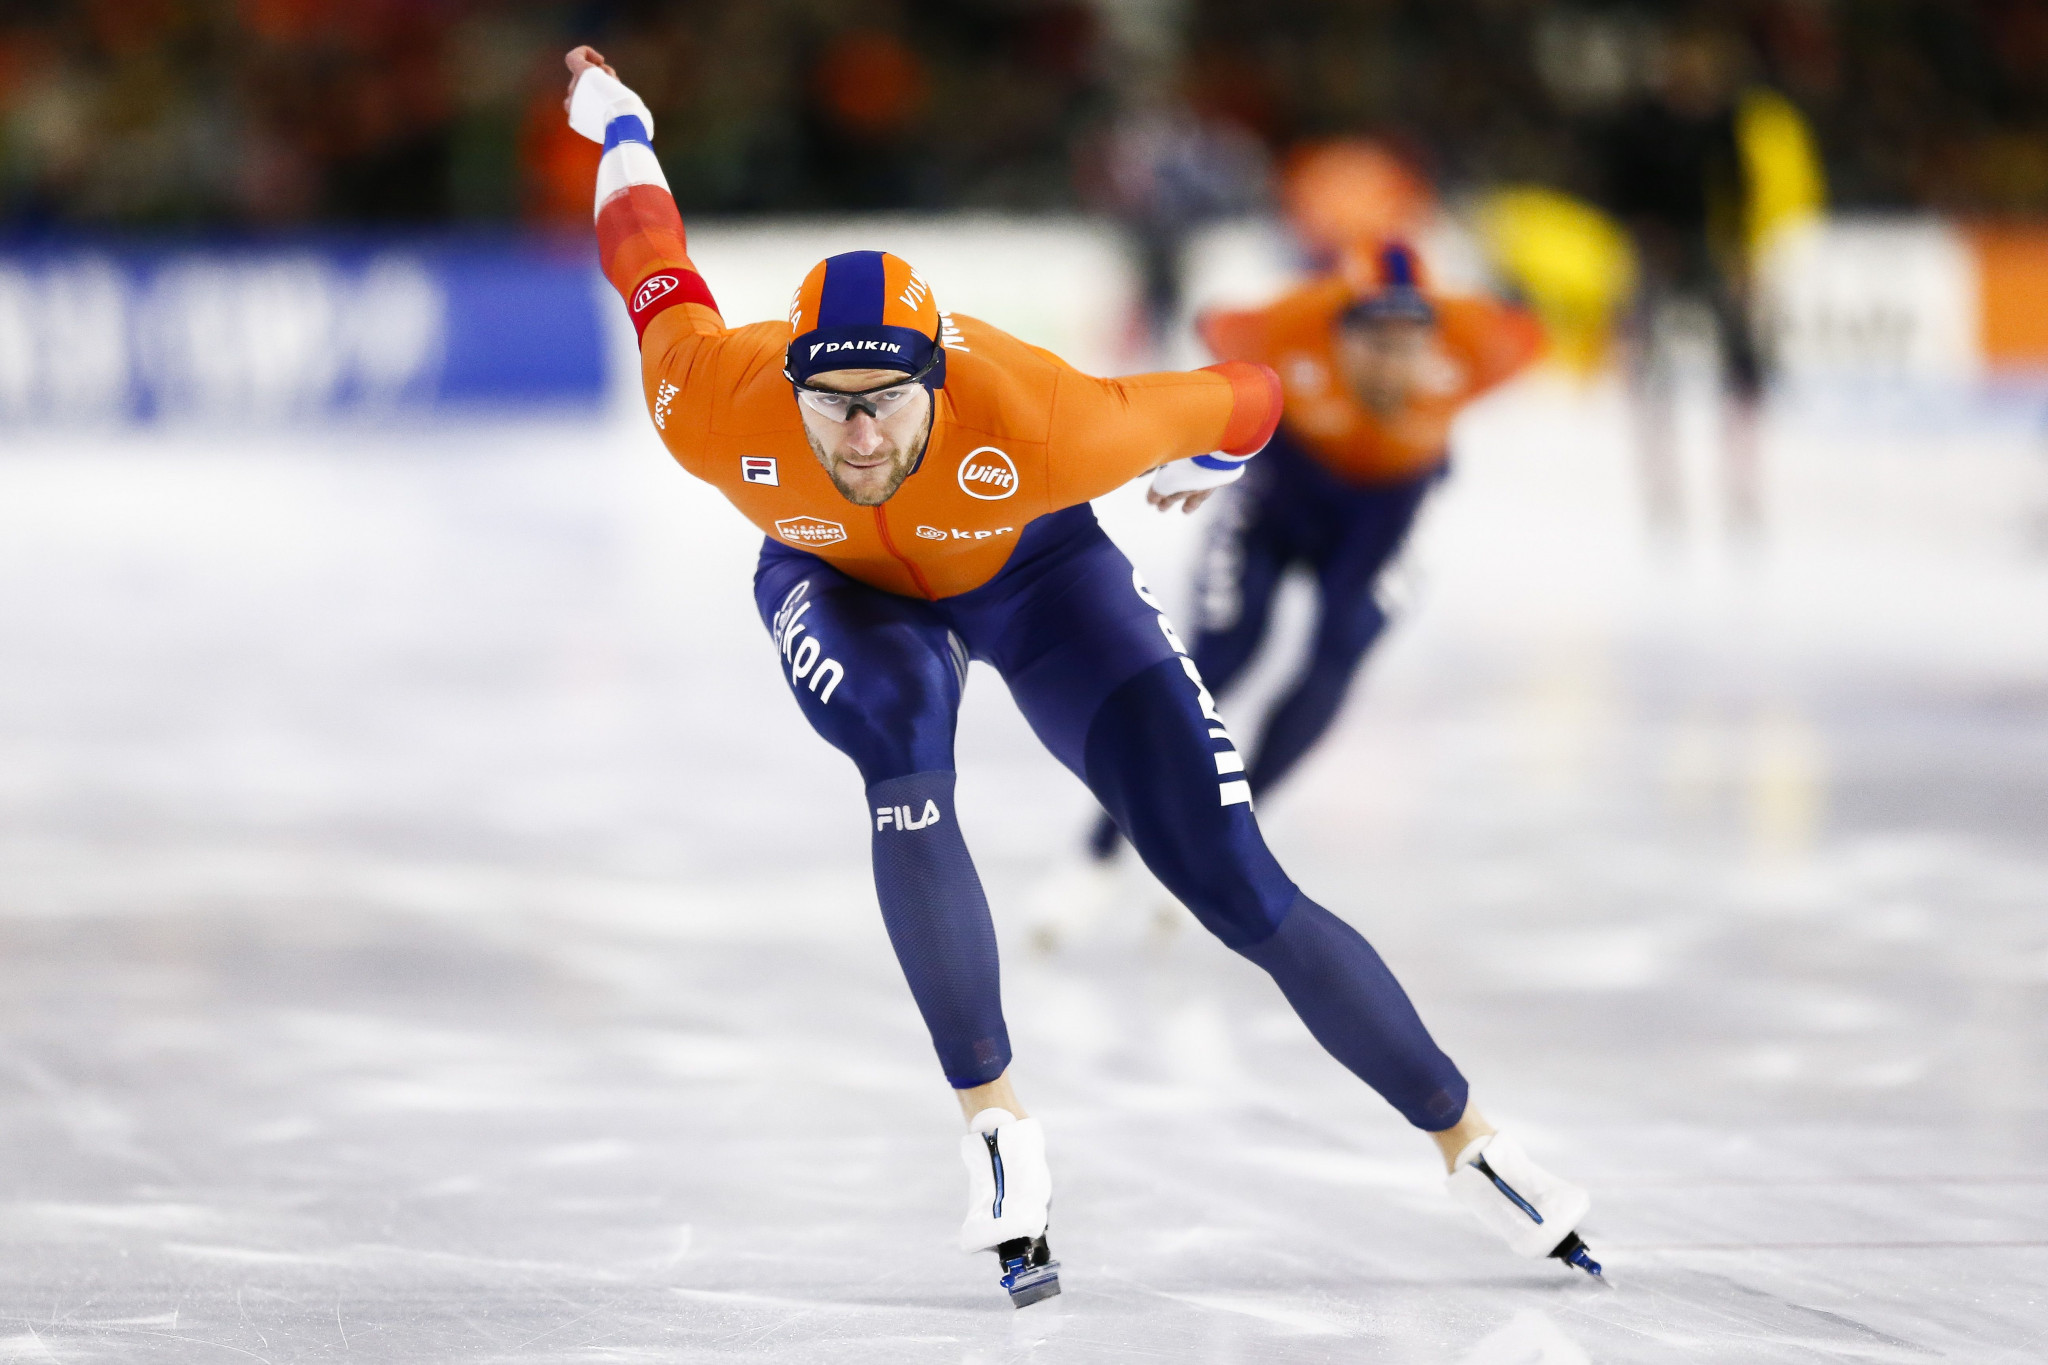 ISU establish deadlines to determine whether speed skating events can be held